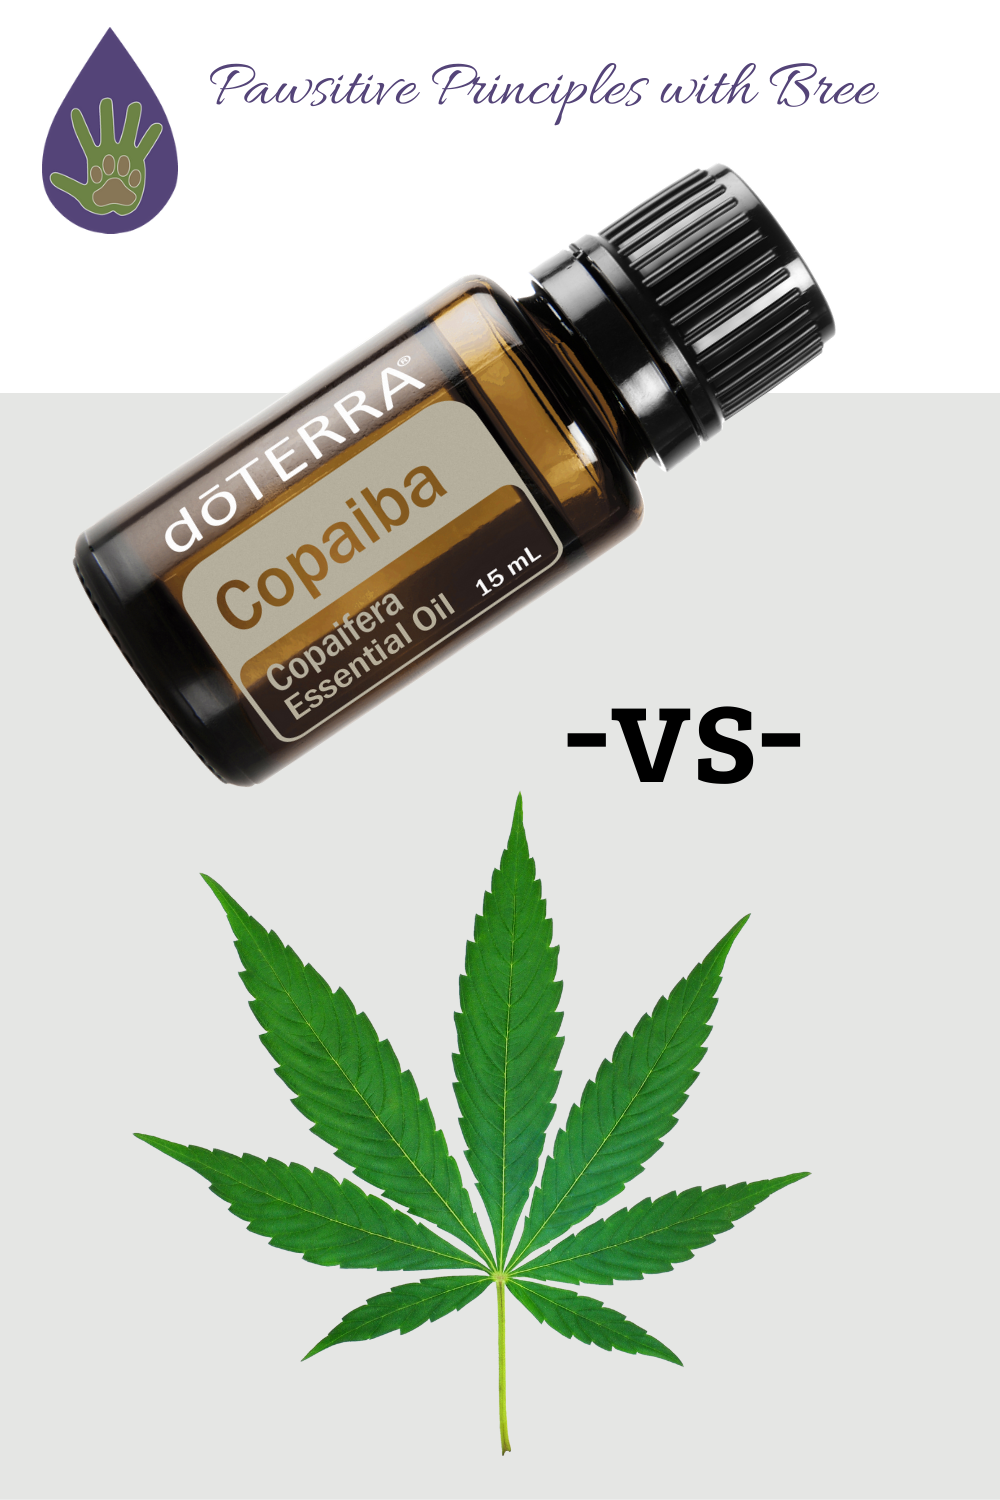 Is Copaiba or CBD the better option for your dog? Here's why Copaiba is the best choice for your pup's health.